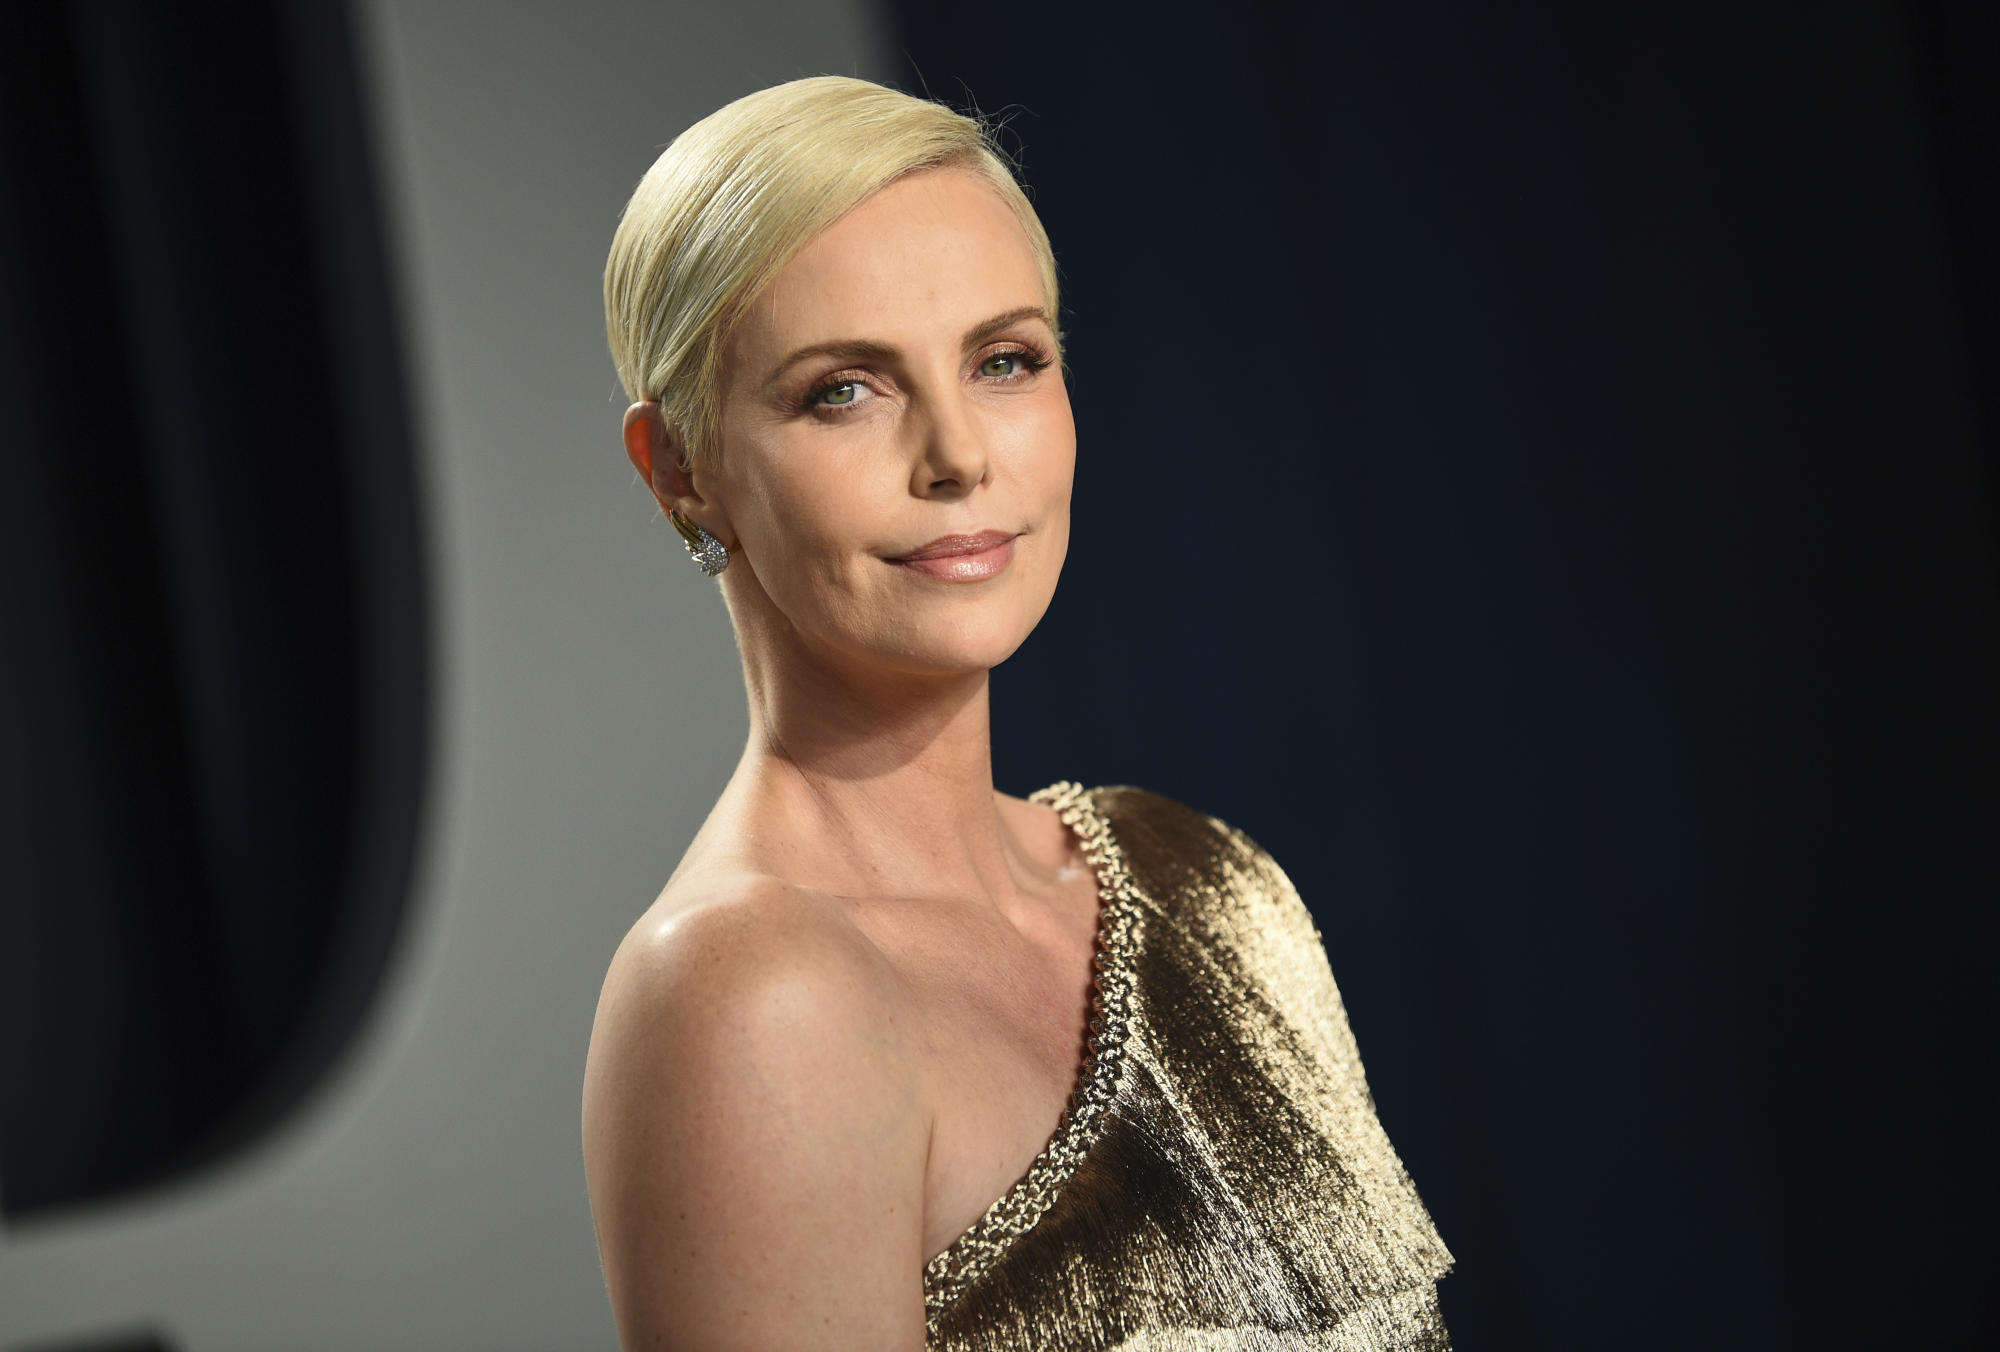 Charlize Theron Lays Into Steven Seagal For Attitude To Women